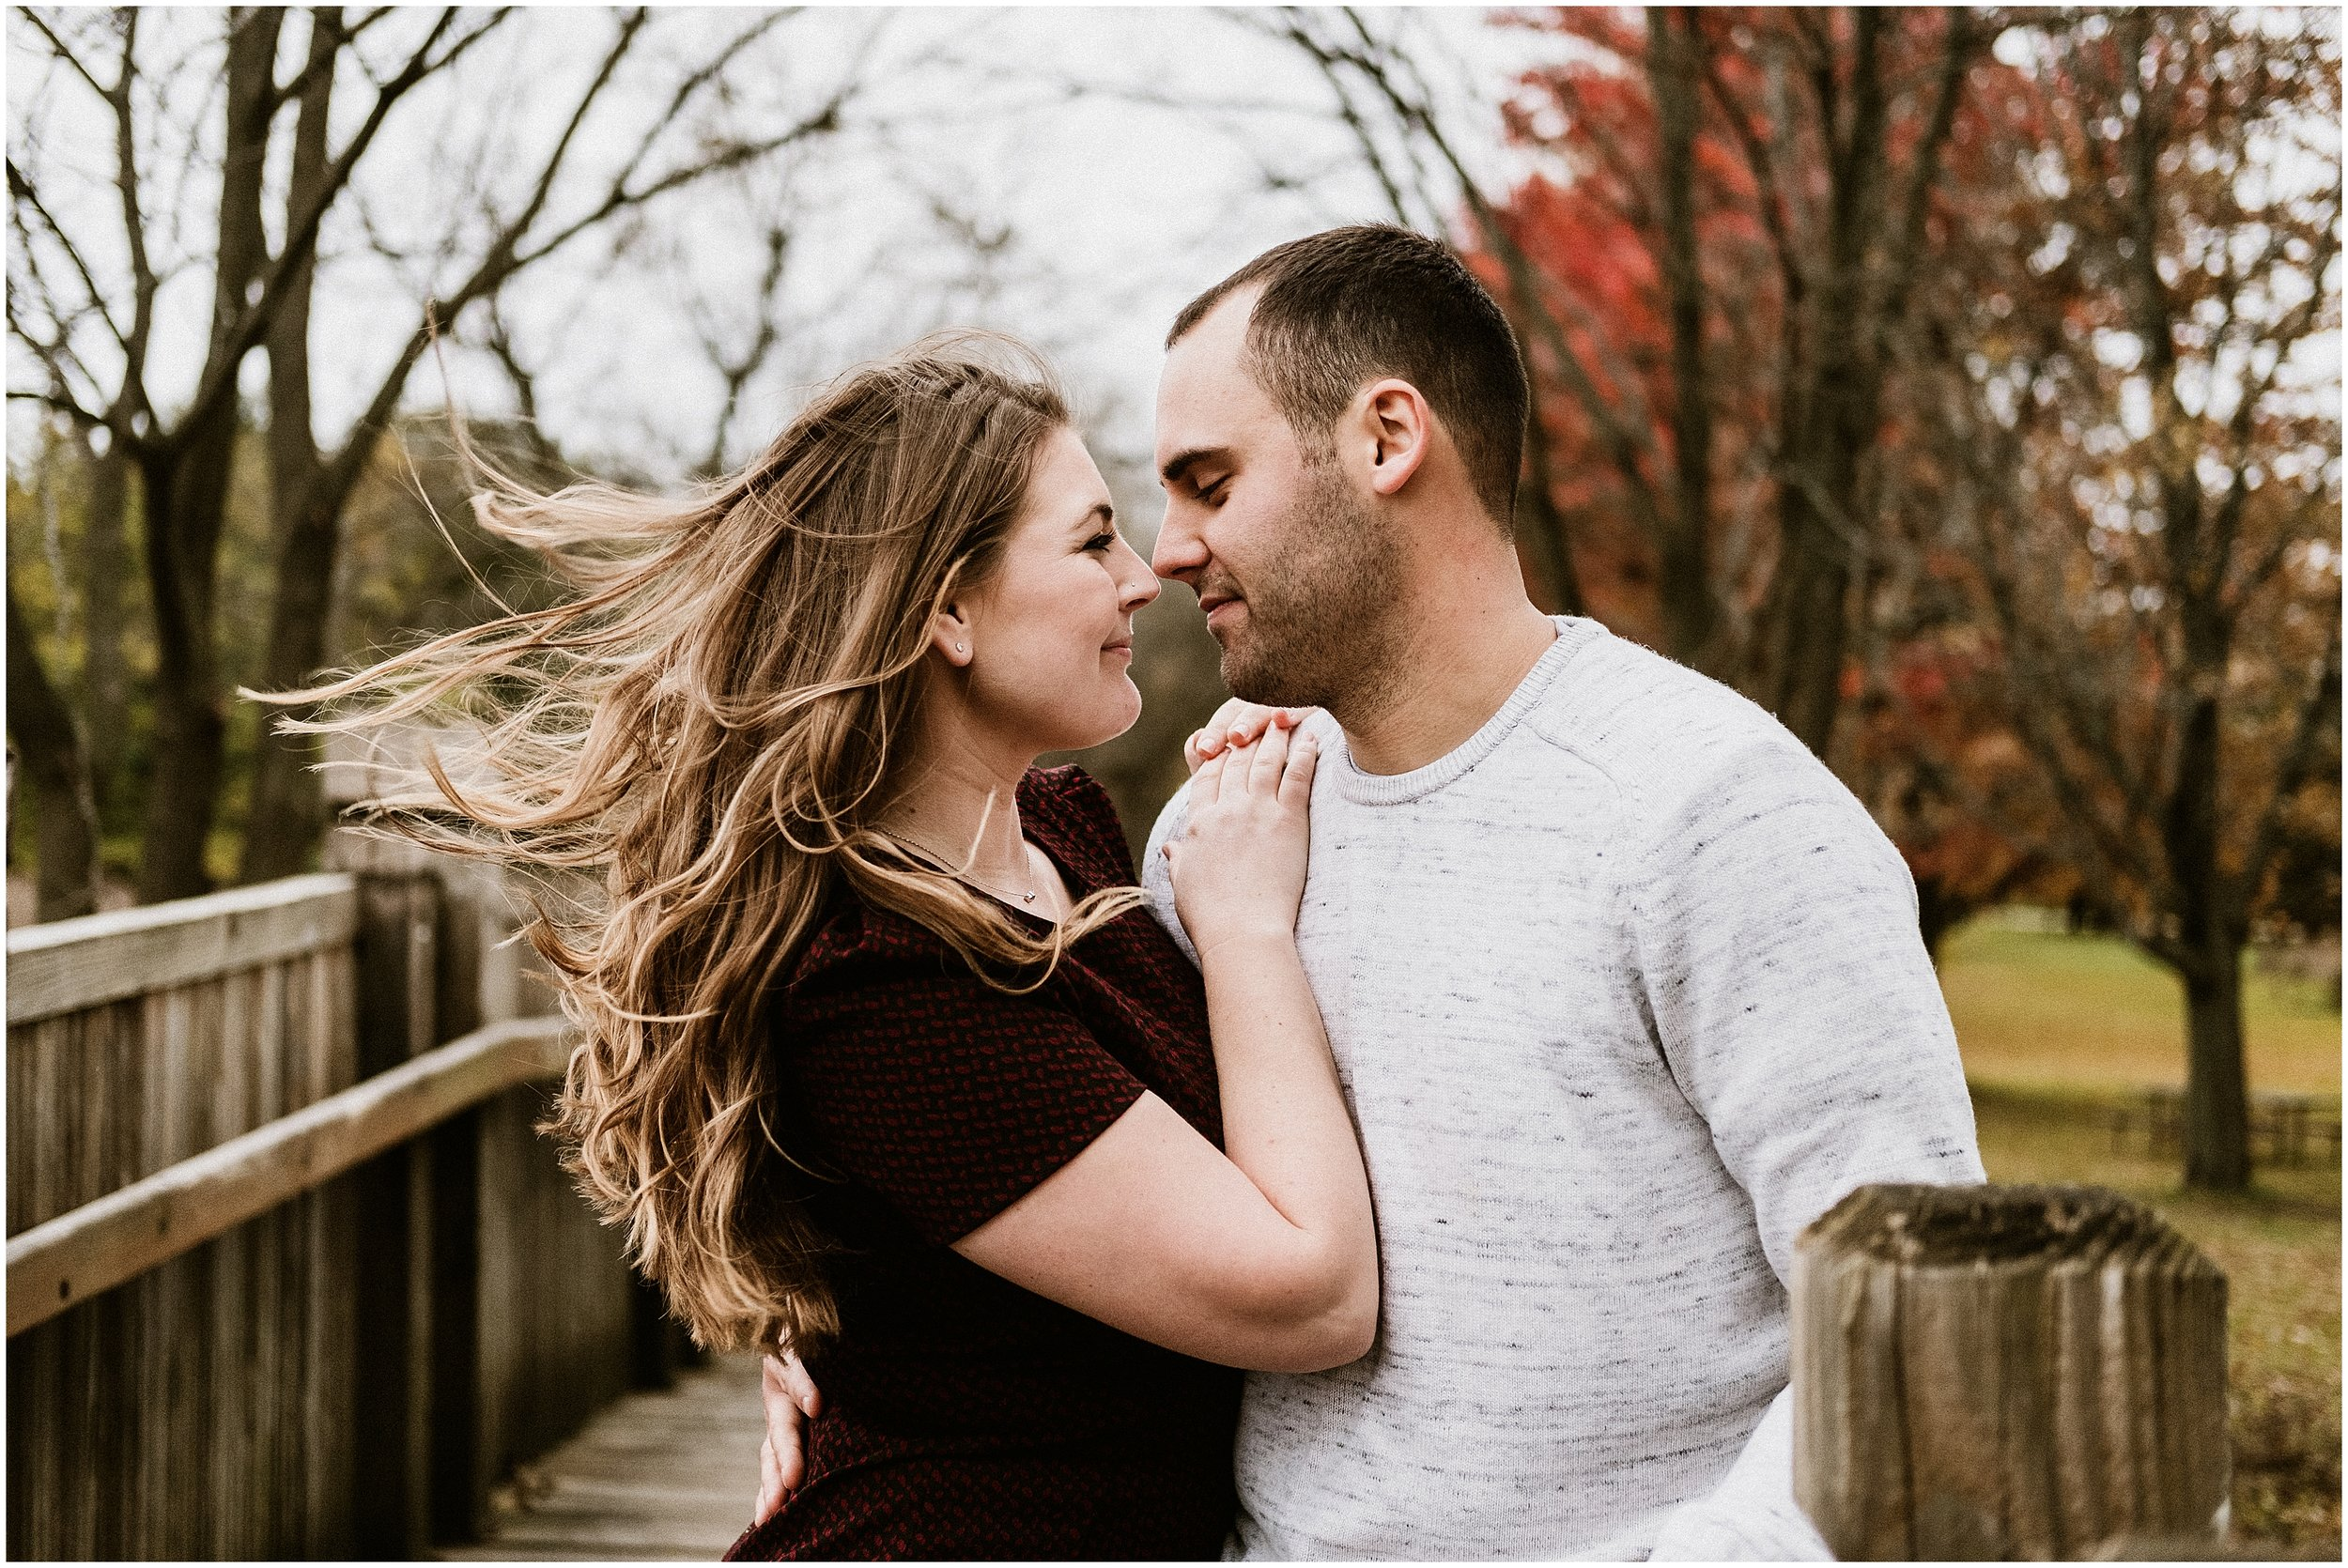 Jenny and Mike | Fall Engagement Session | St. James Farm | Wheaton, IL | Chicago Wedding Photographer